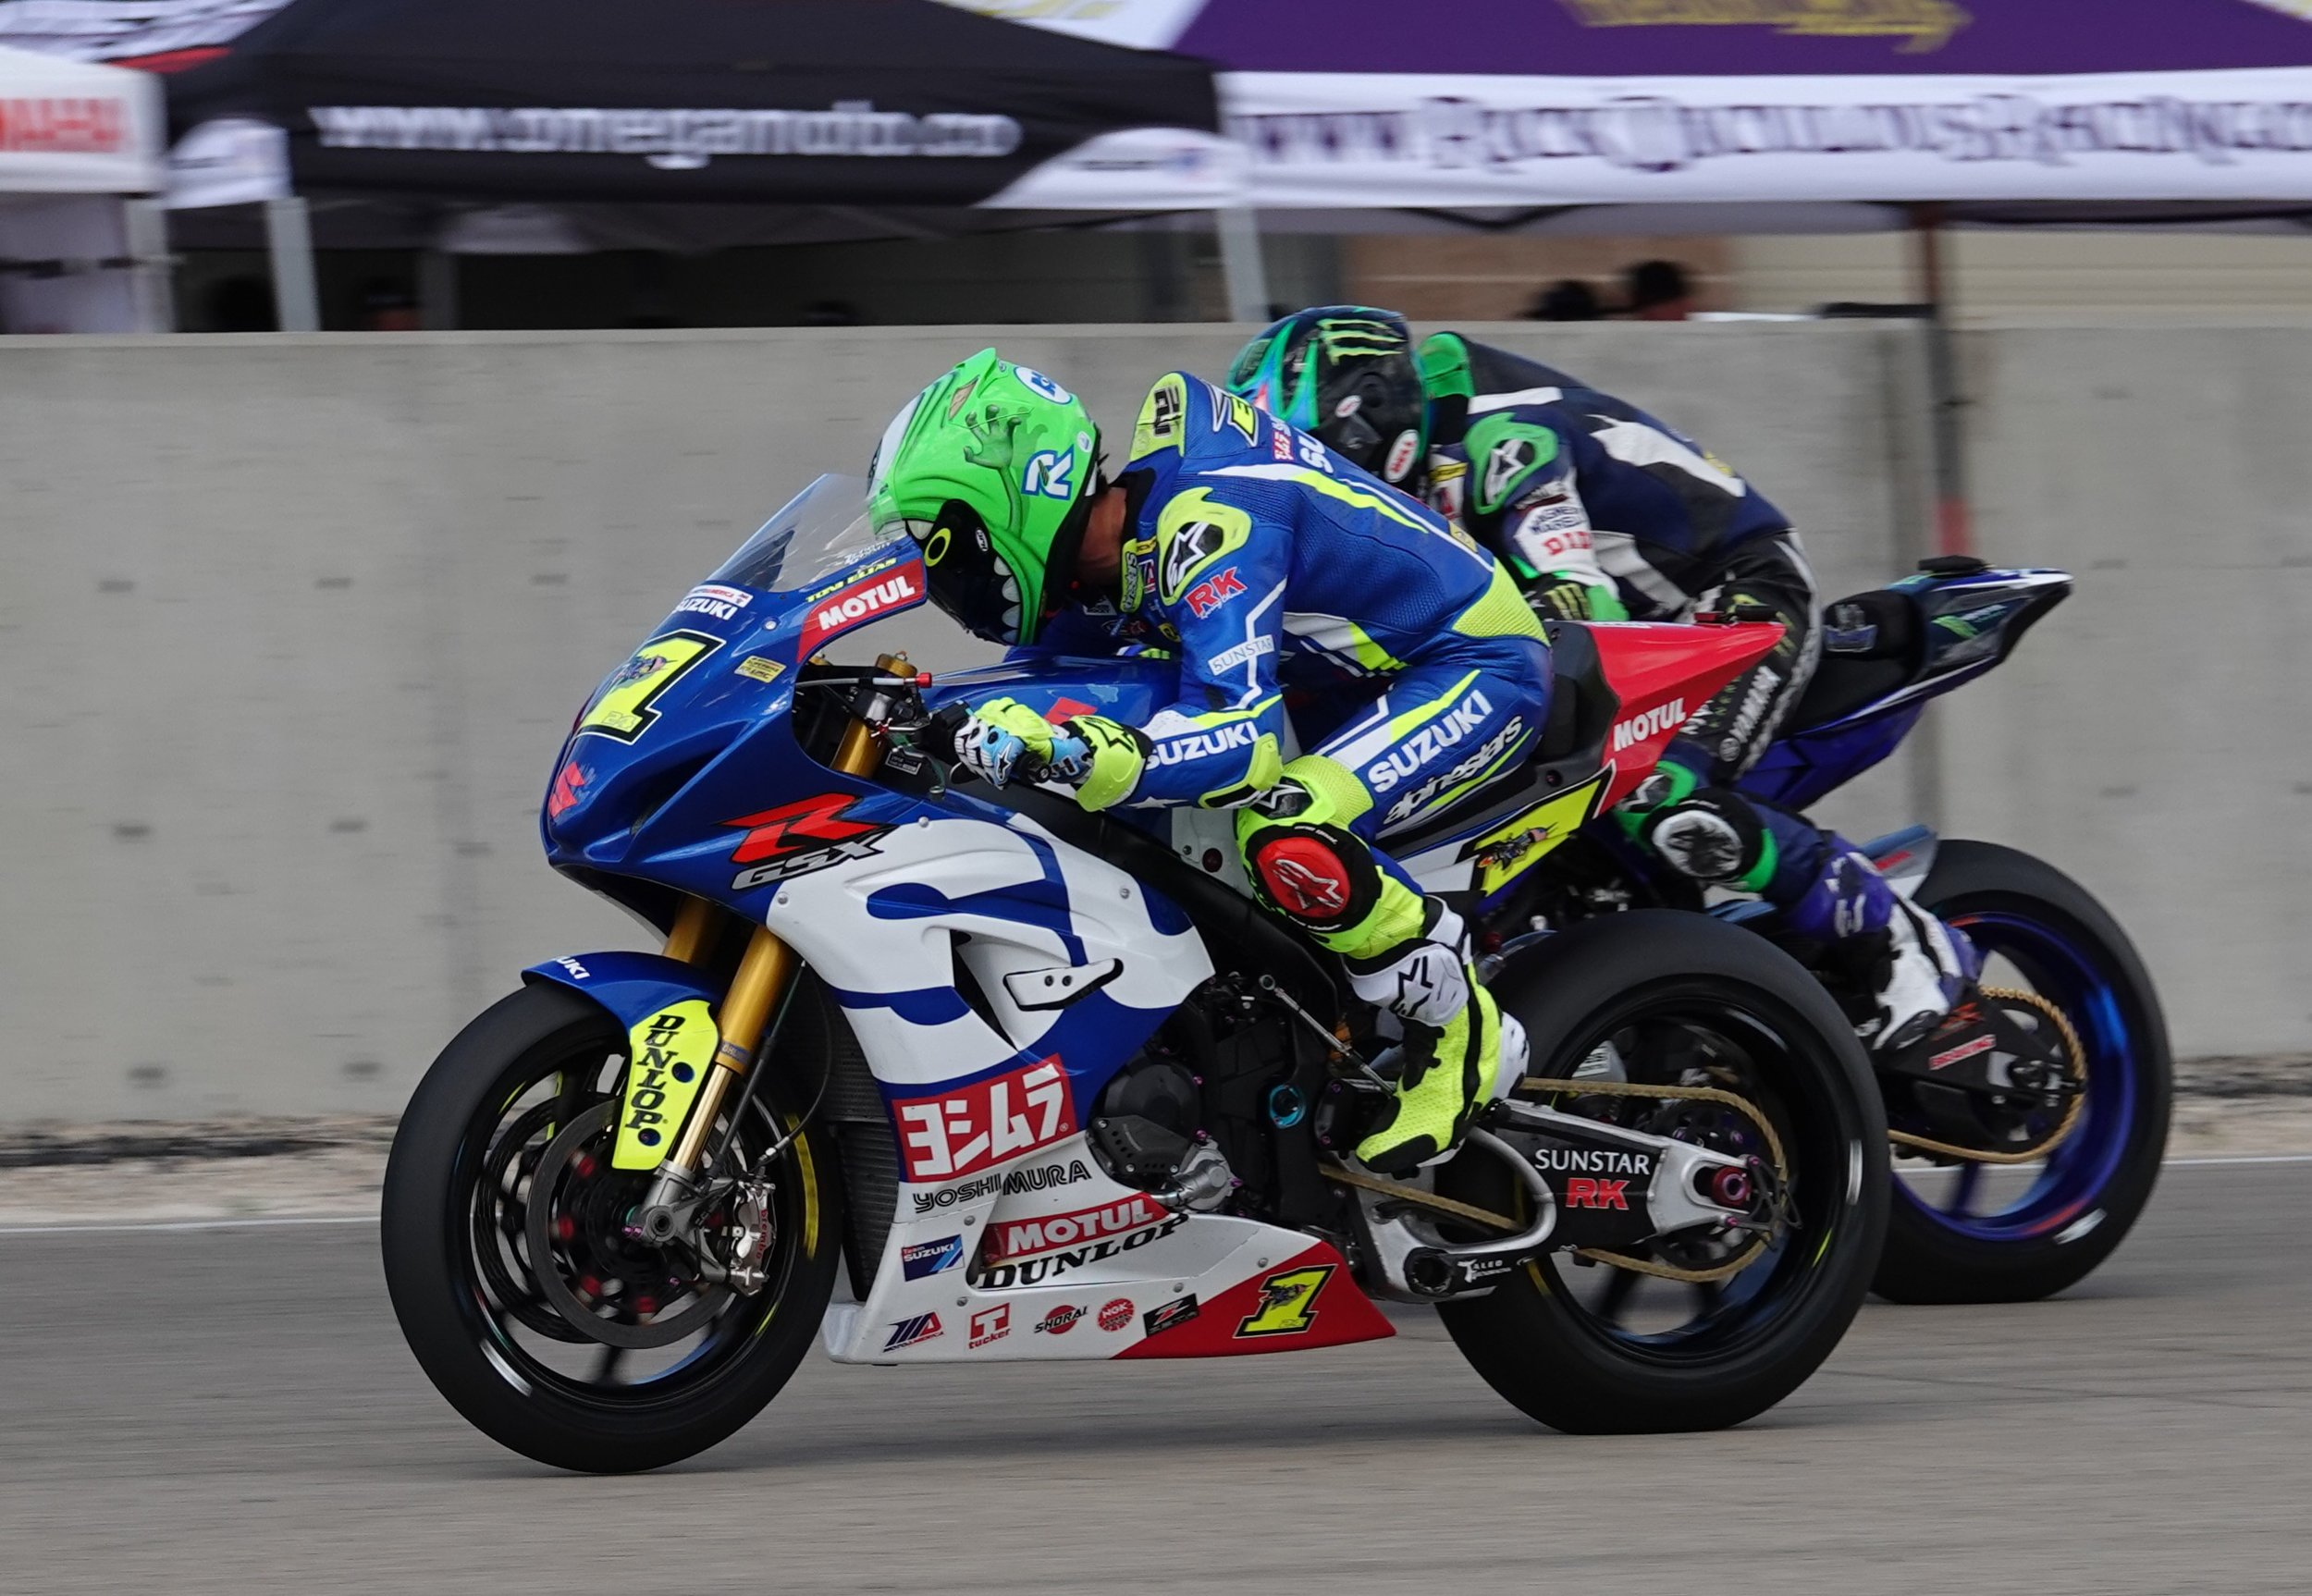 Defending MotoAmerica Superbike Champion Toni Elias (No. 1) races his Yoshimura Suzuki down the straightaway at Utah Motorsports Campus and looks back to see rival Cameron Beaubier. (Larry Lawrence photo)